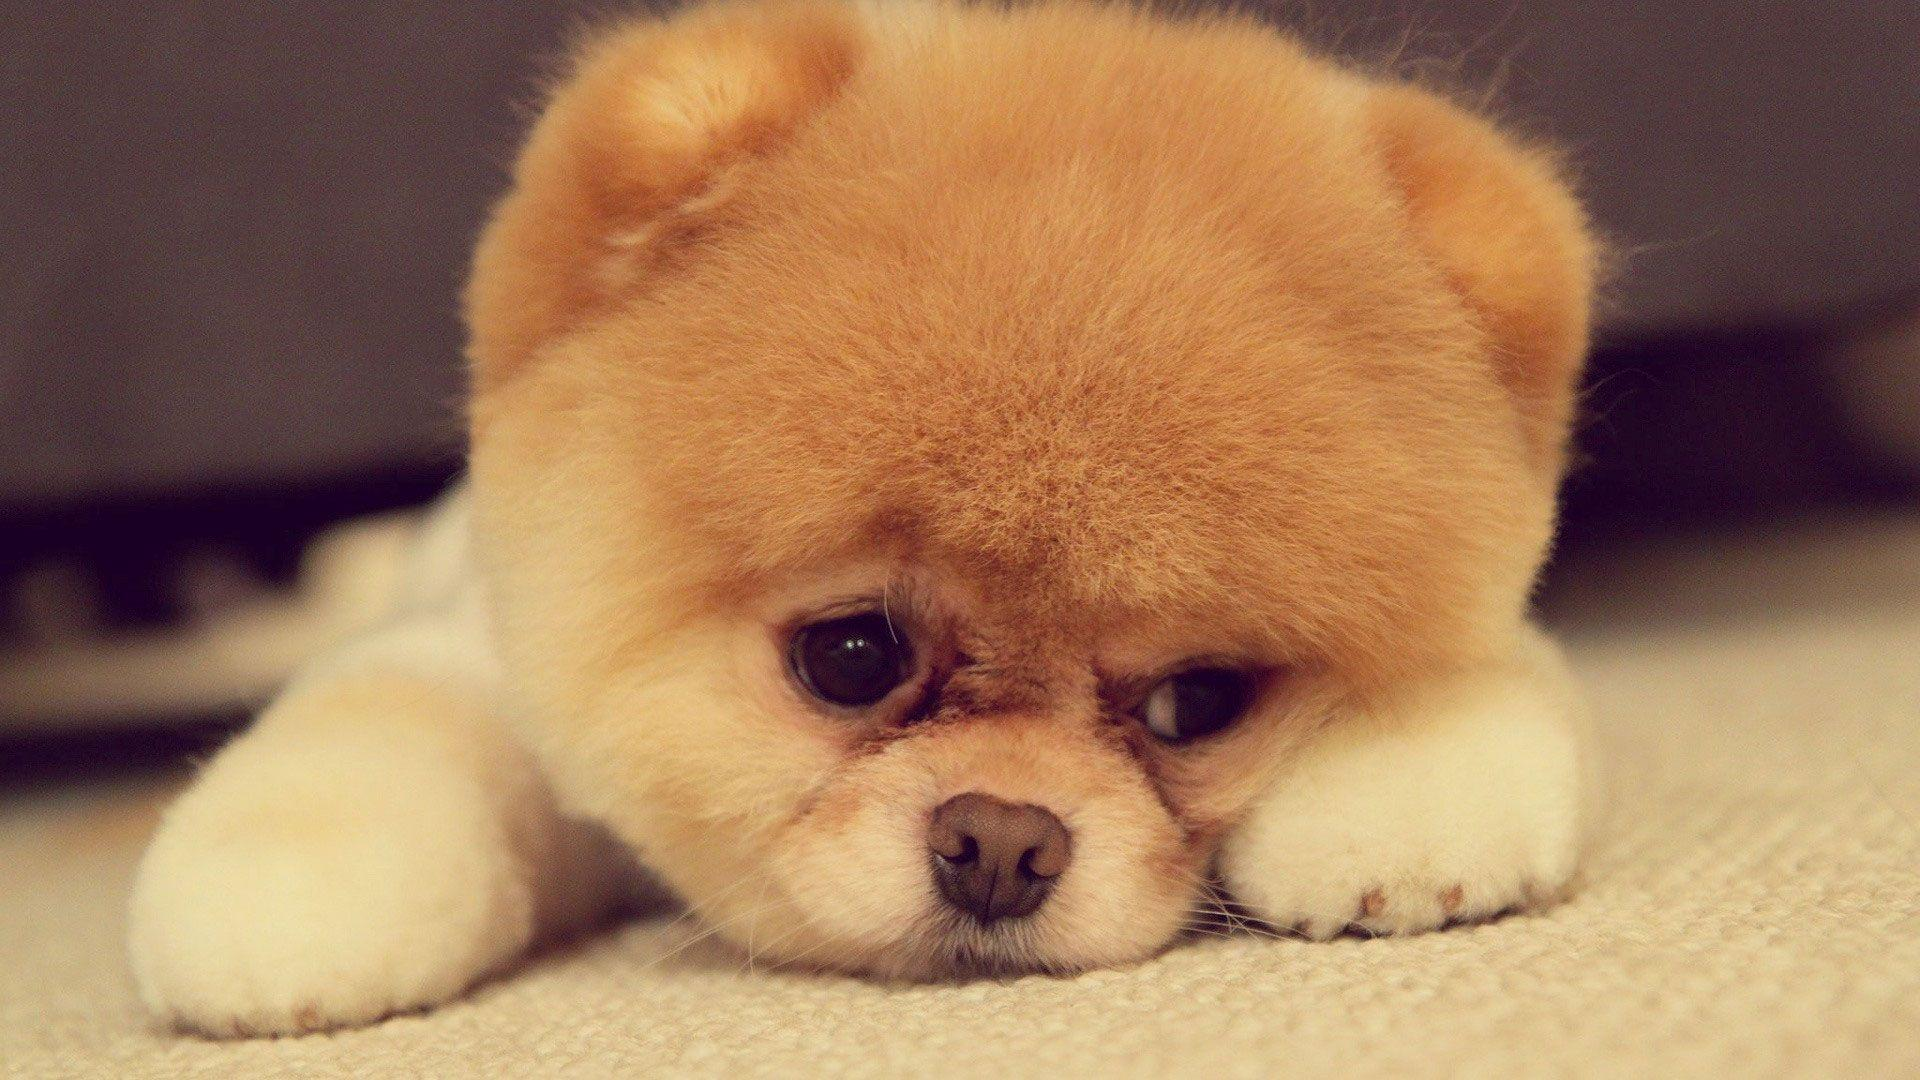 Cute Puppy Boo Wallpaper - MixHD wallpapers